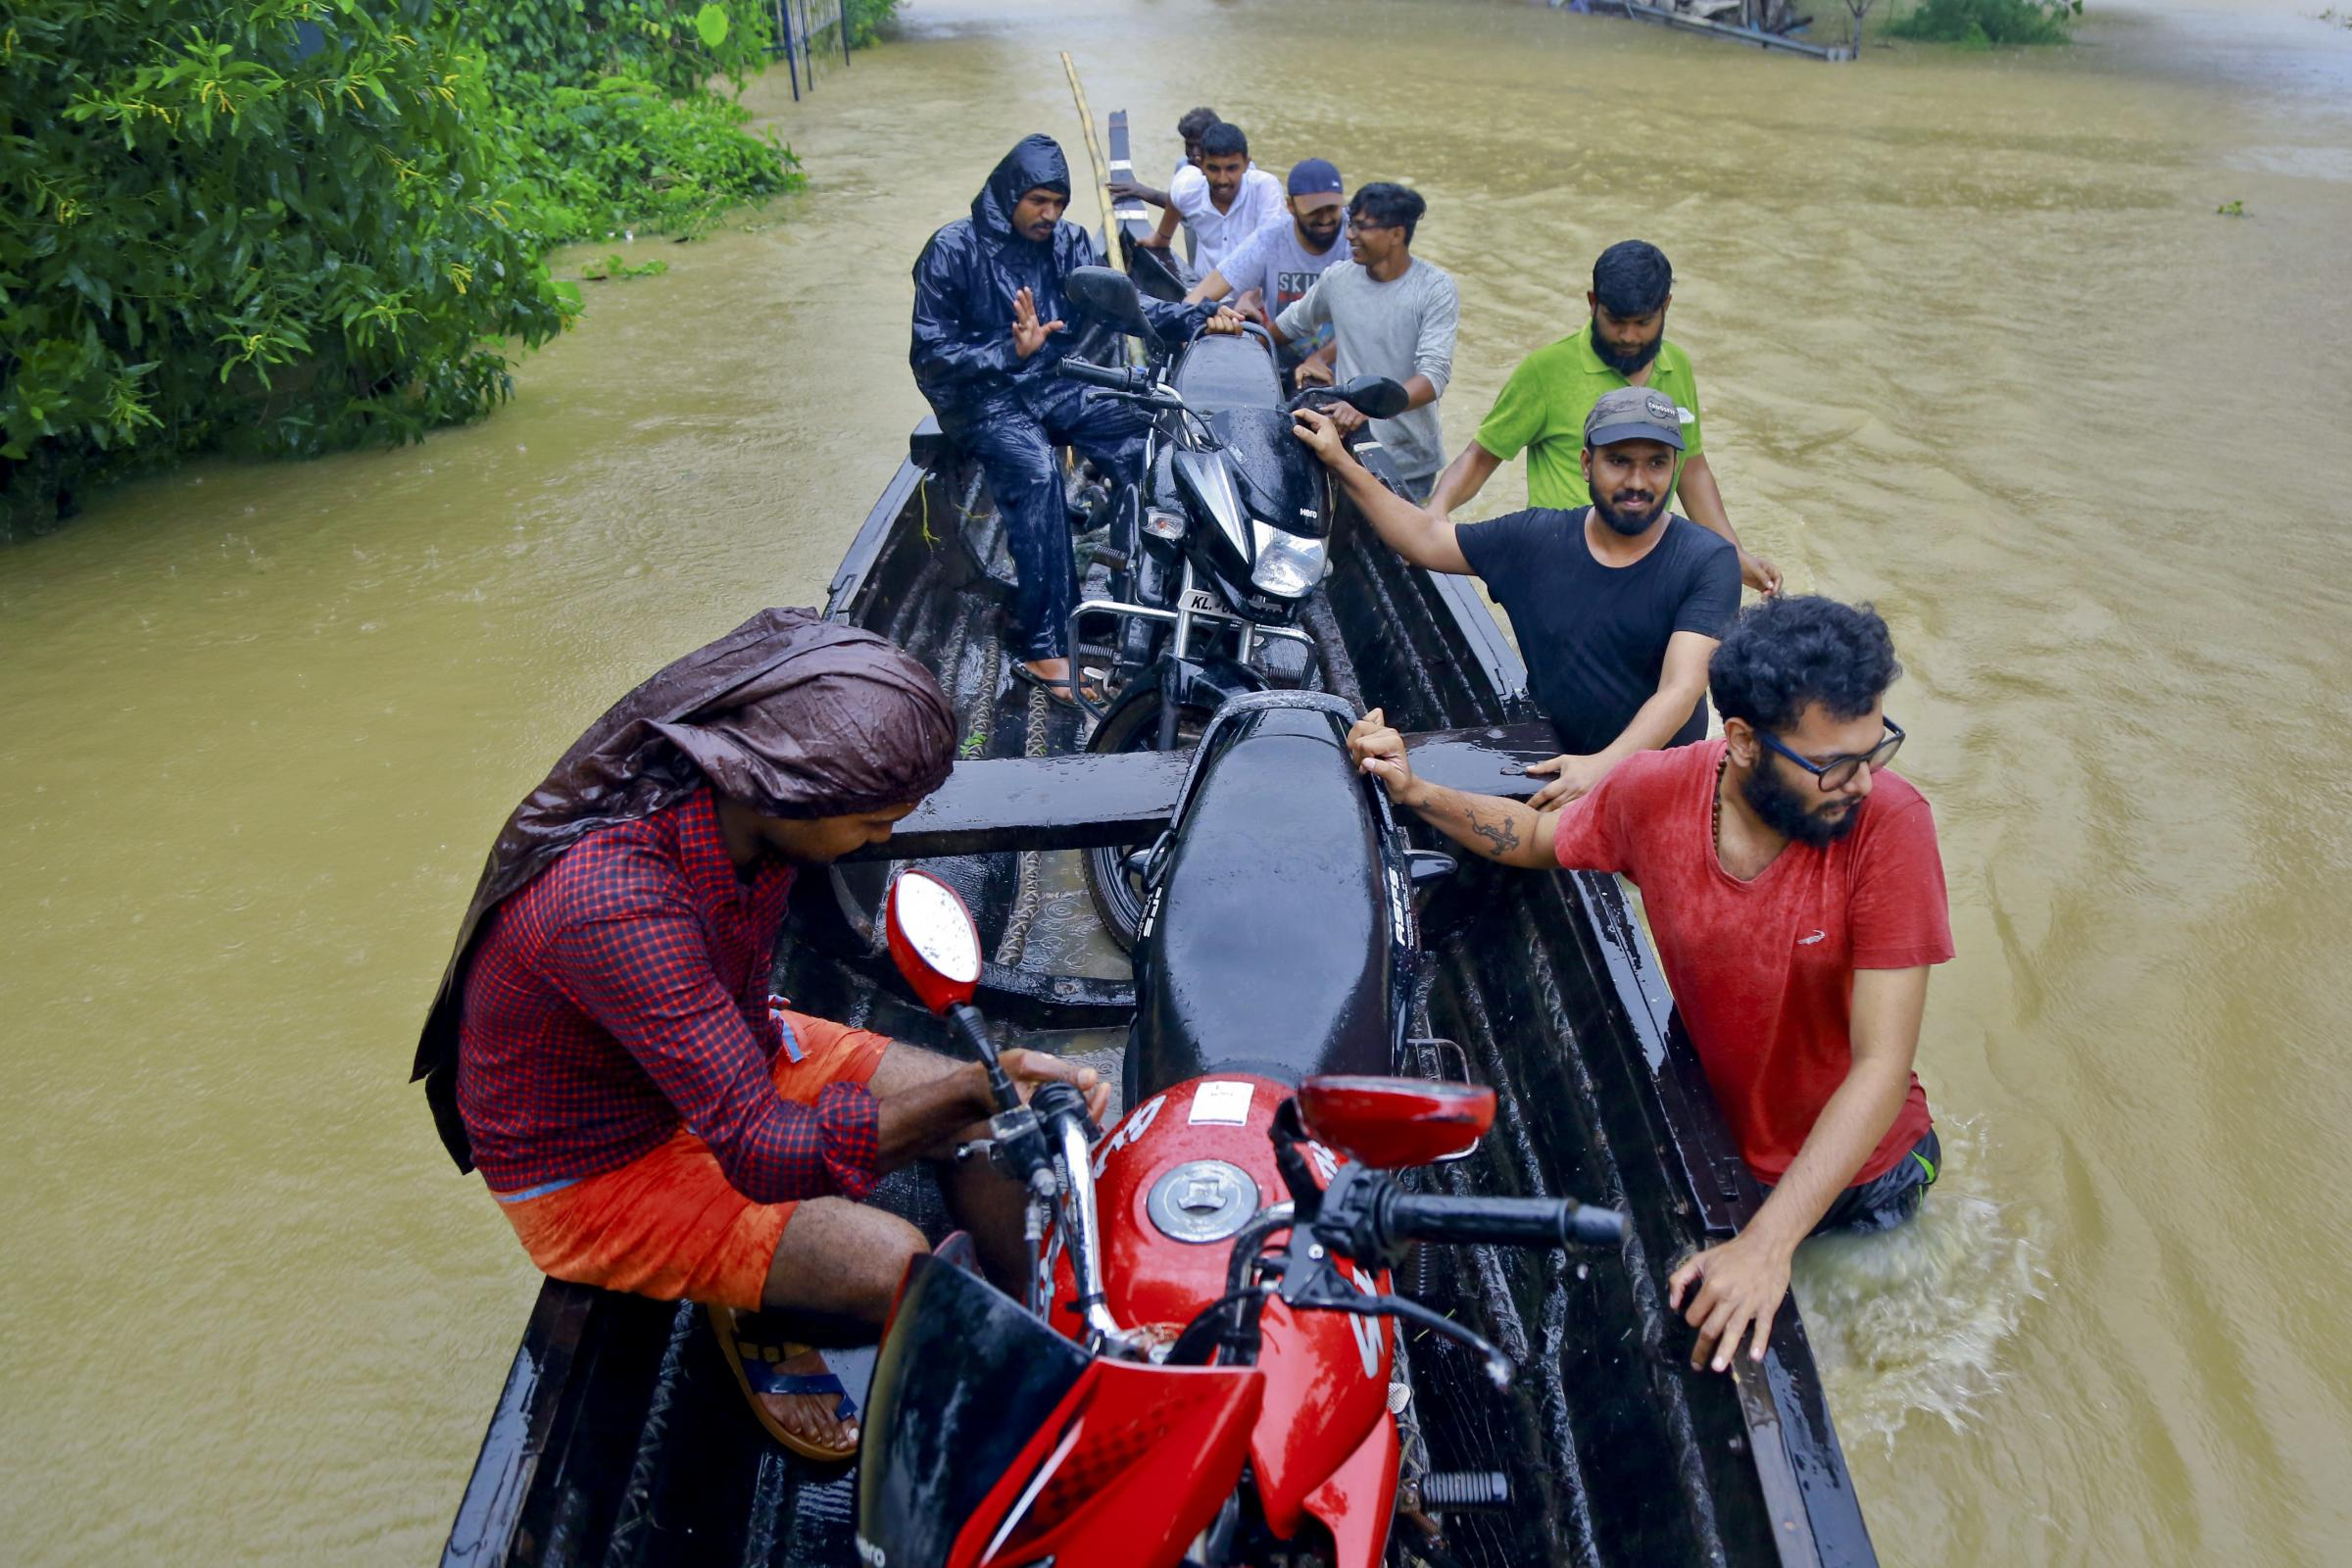 Rescuers in Alappuzha district, Kerala state